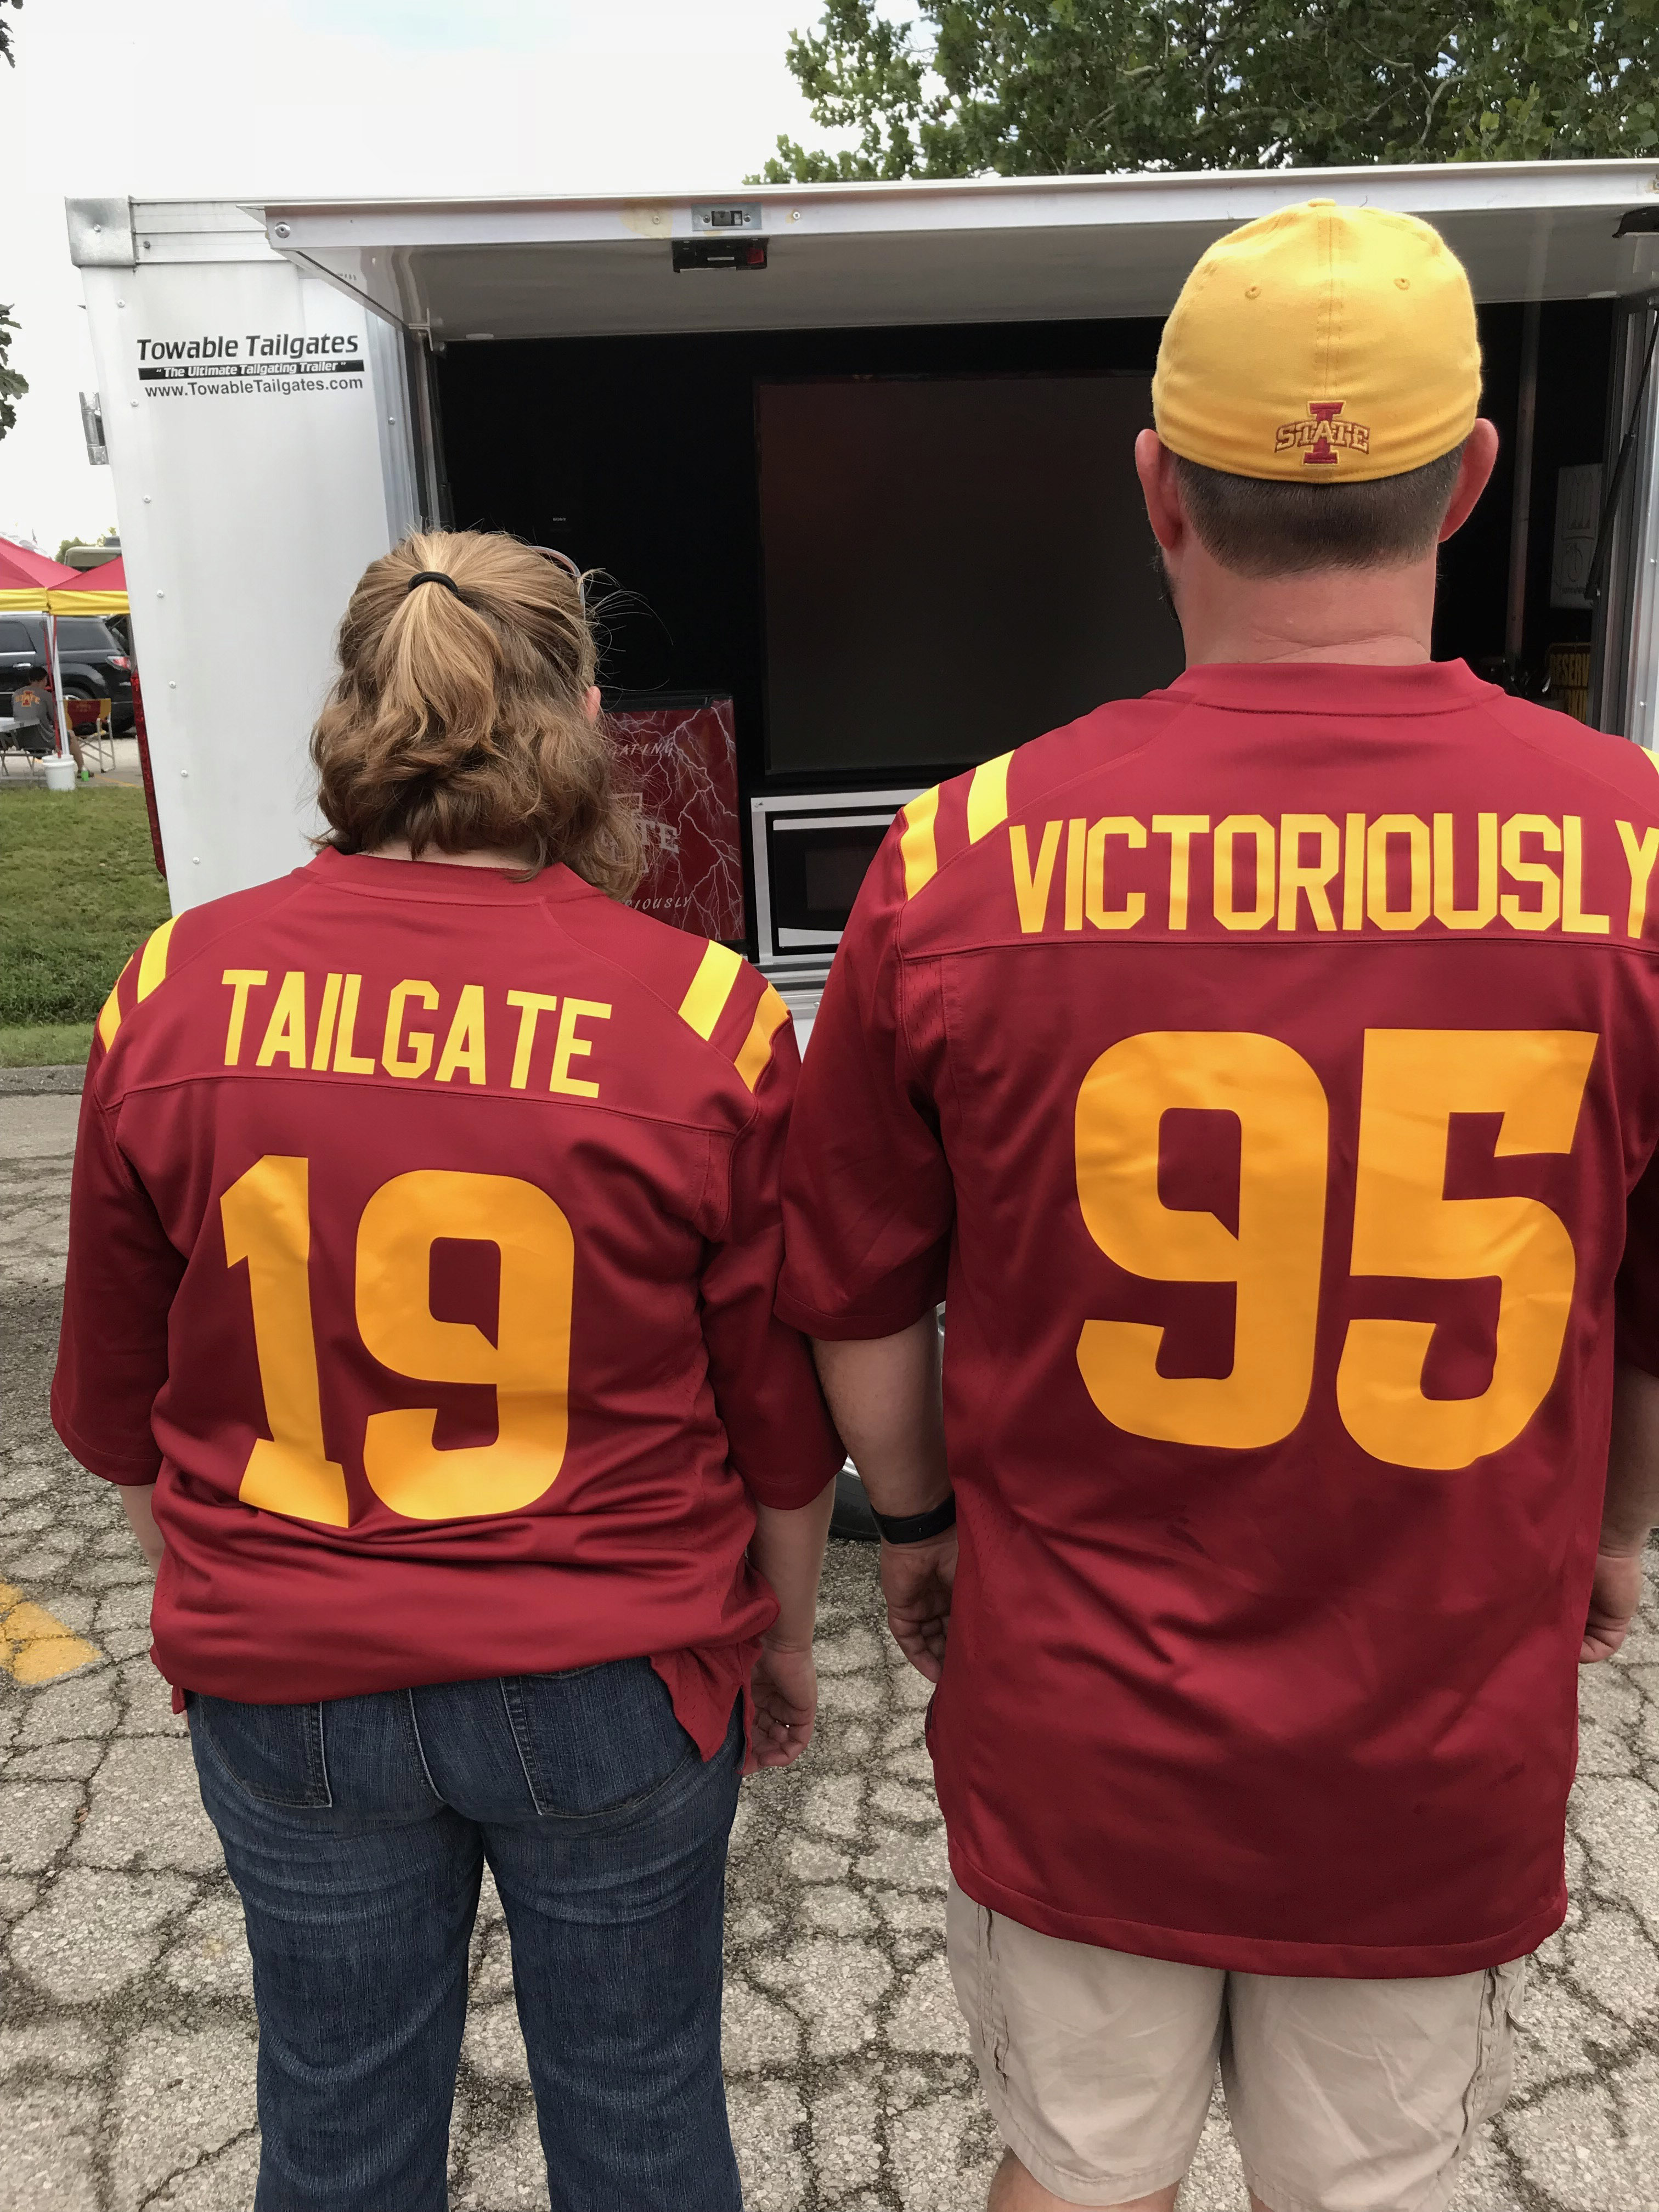 These Super Fans Bring Superb Tailgating Skills to the Table